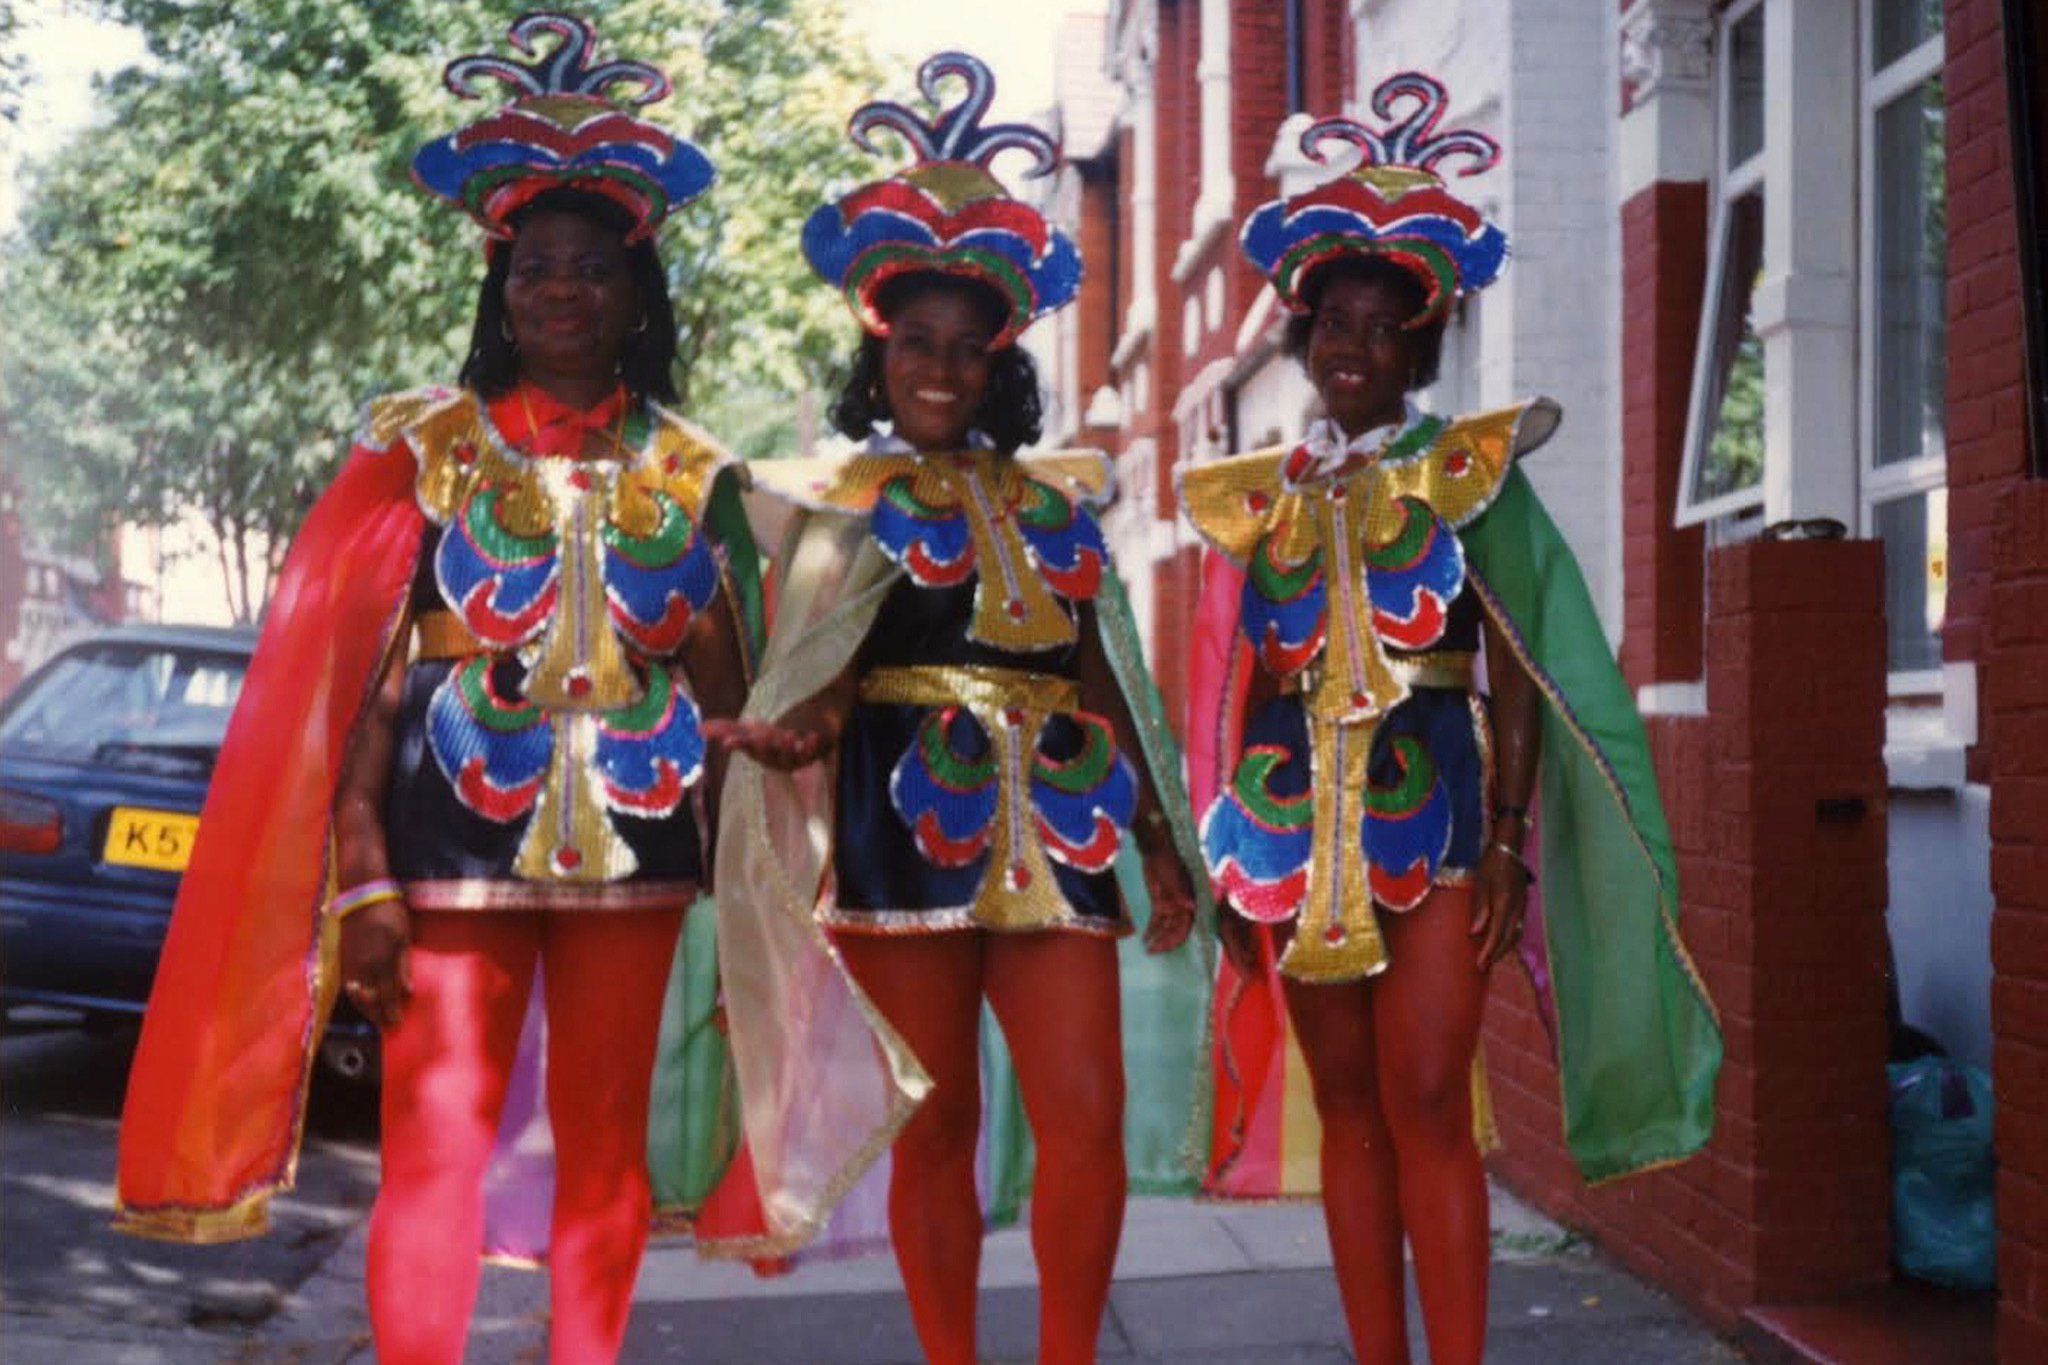 notting hill carnival, 1980s